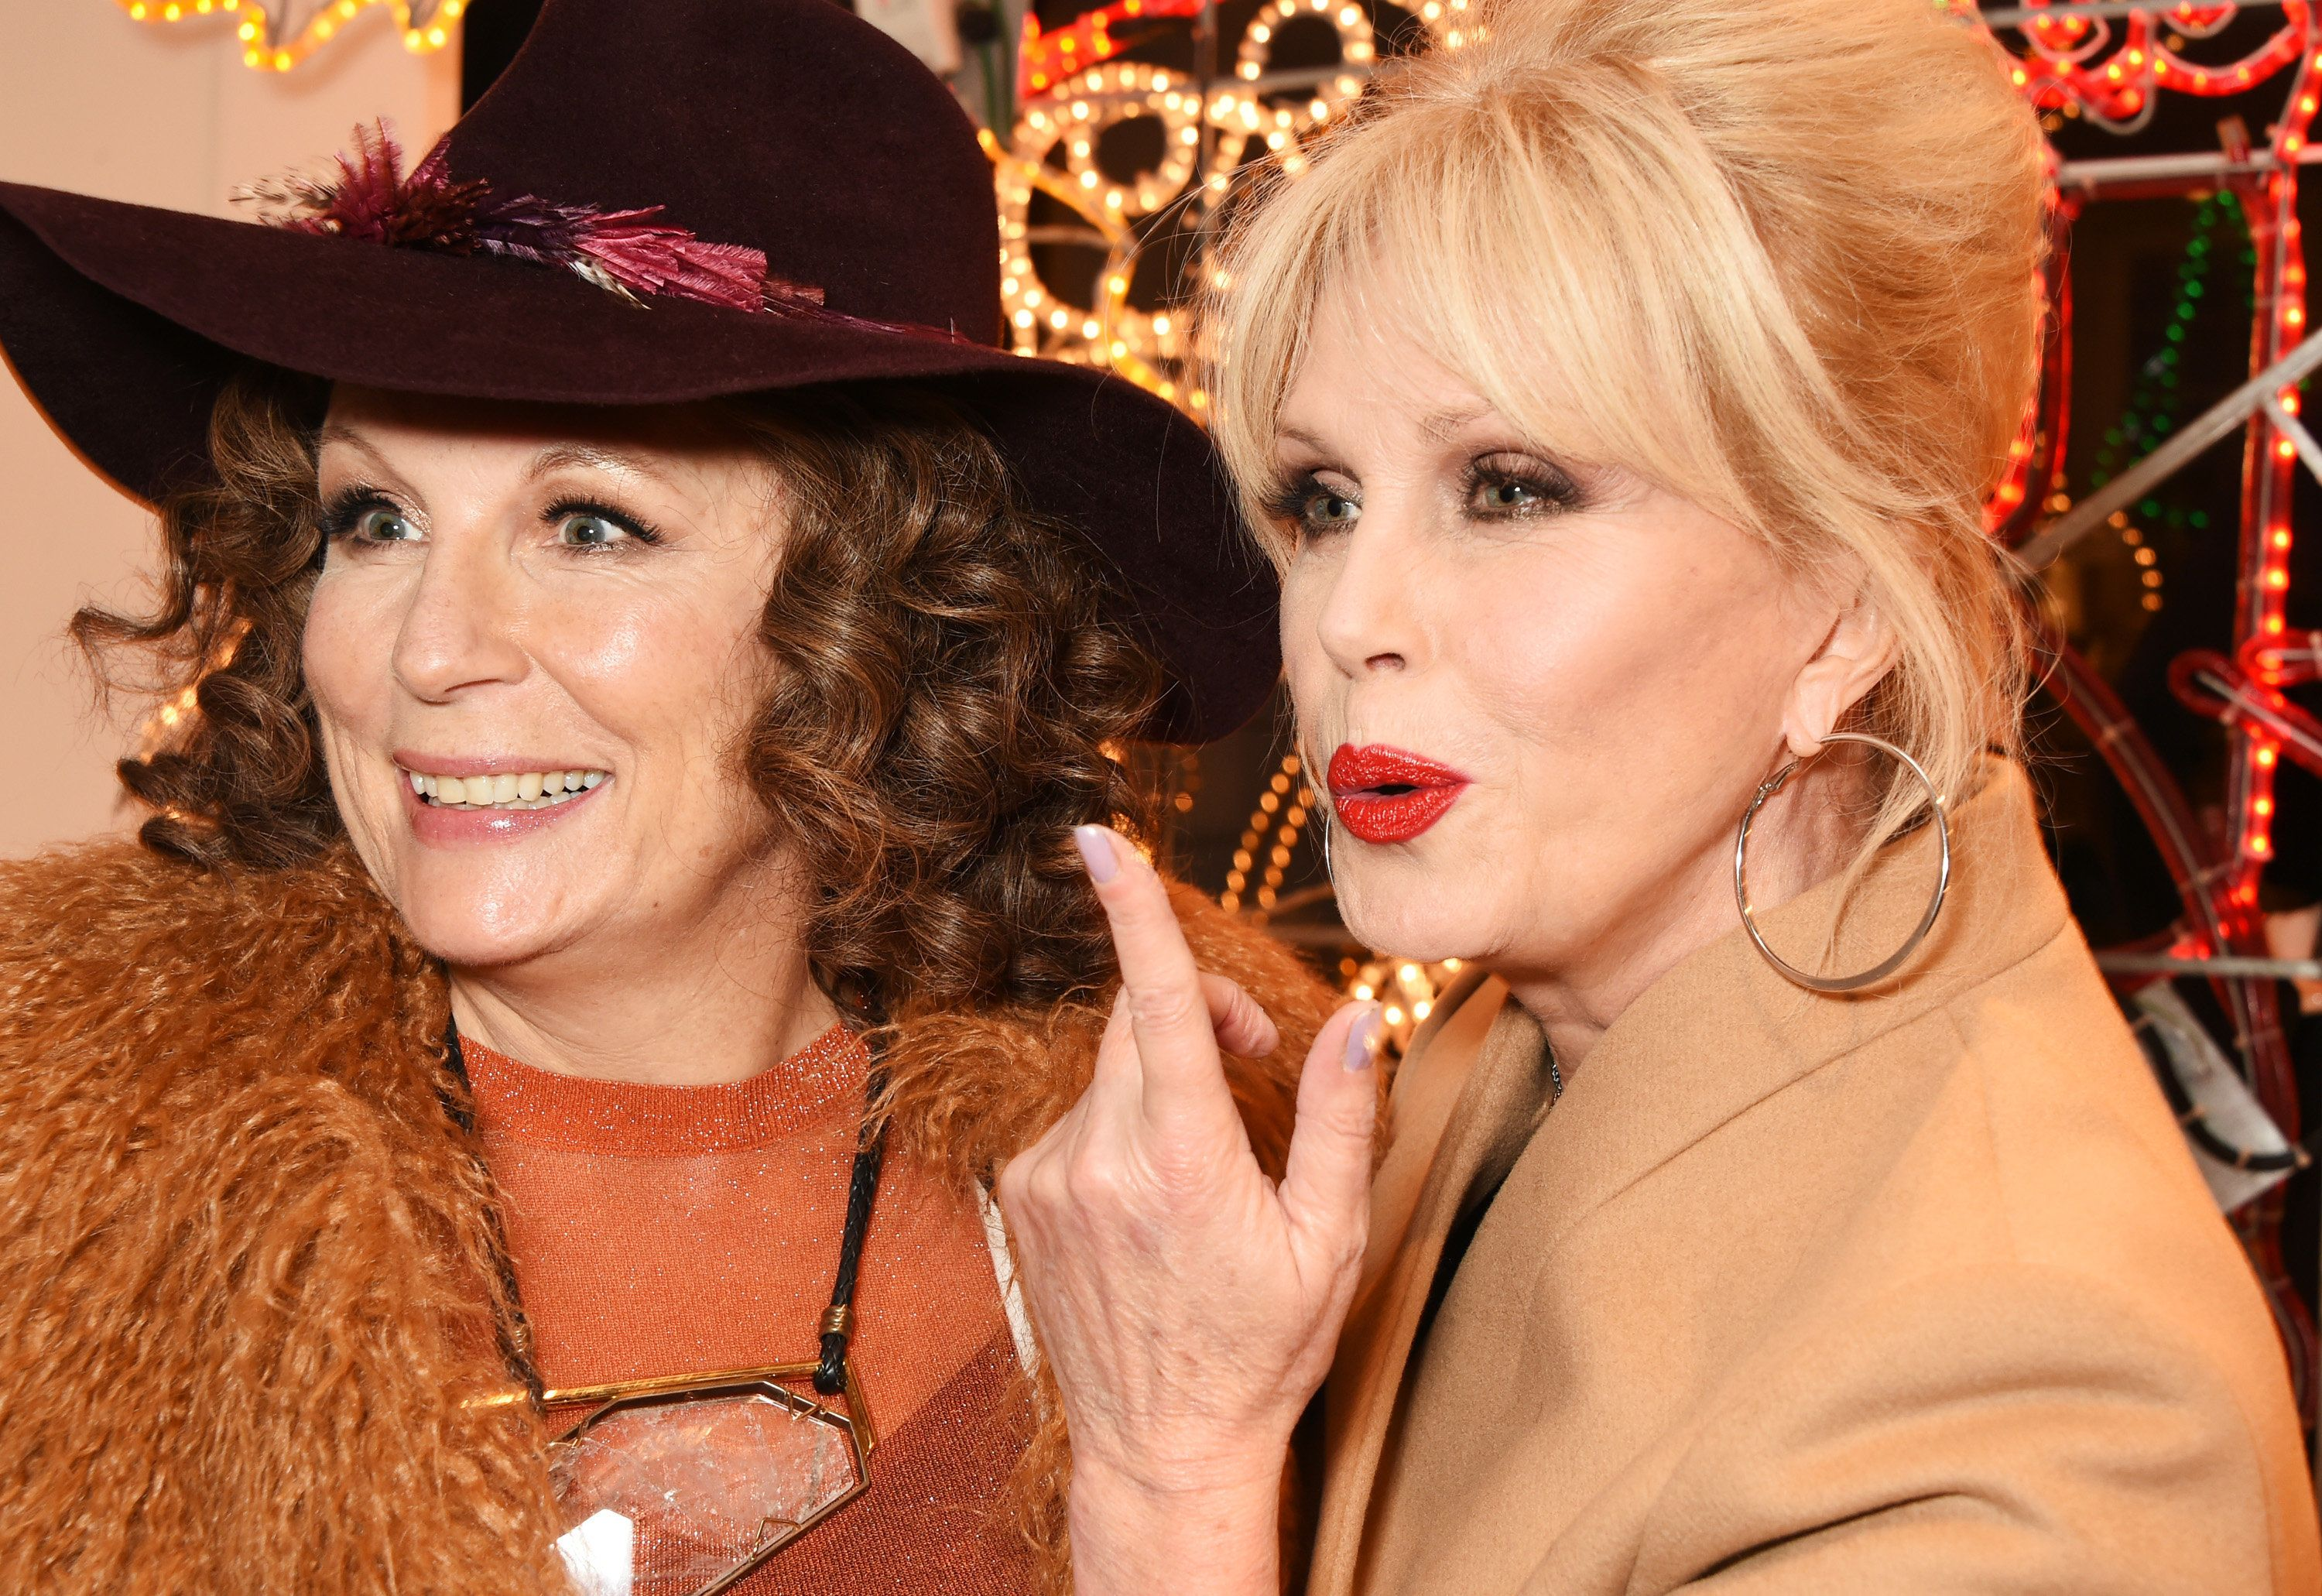 LONDON, ENGLAND - NOVEMBER 25:  Jennifer Saunders (L) and Joanna Lumley as Edina Monsoon and Patsy Stone attend the Stella McCartney Christmas Lights switch on at the Stella McCartney Bruton Street Store on November 25, 2015 in London, England.  (Photo by David M. Benett/Dave Benett/Getty Images for Stella McCartney)